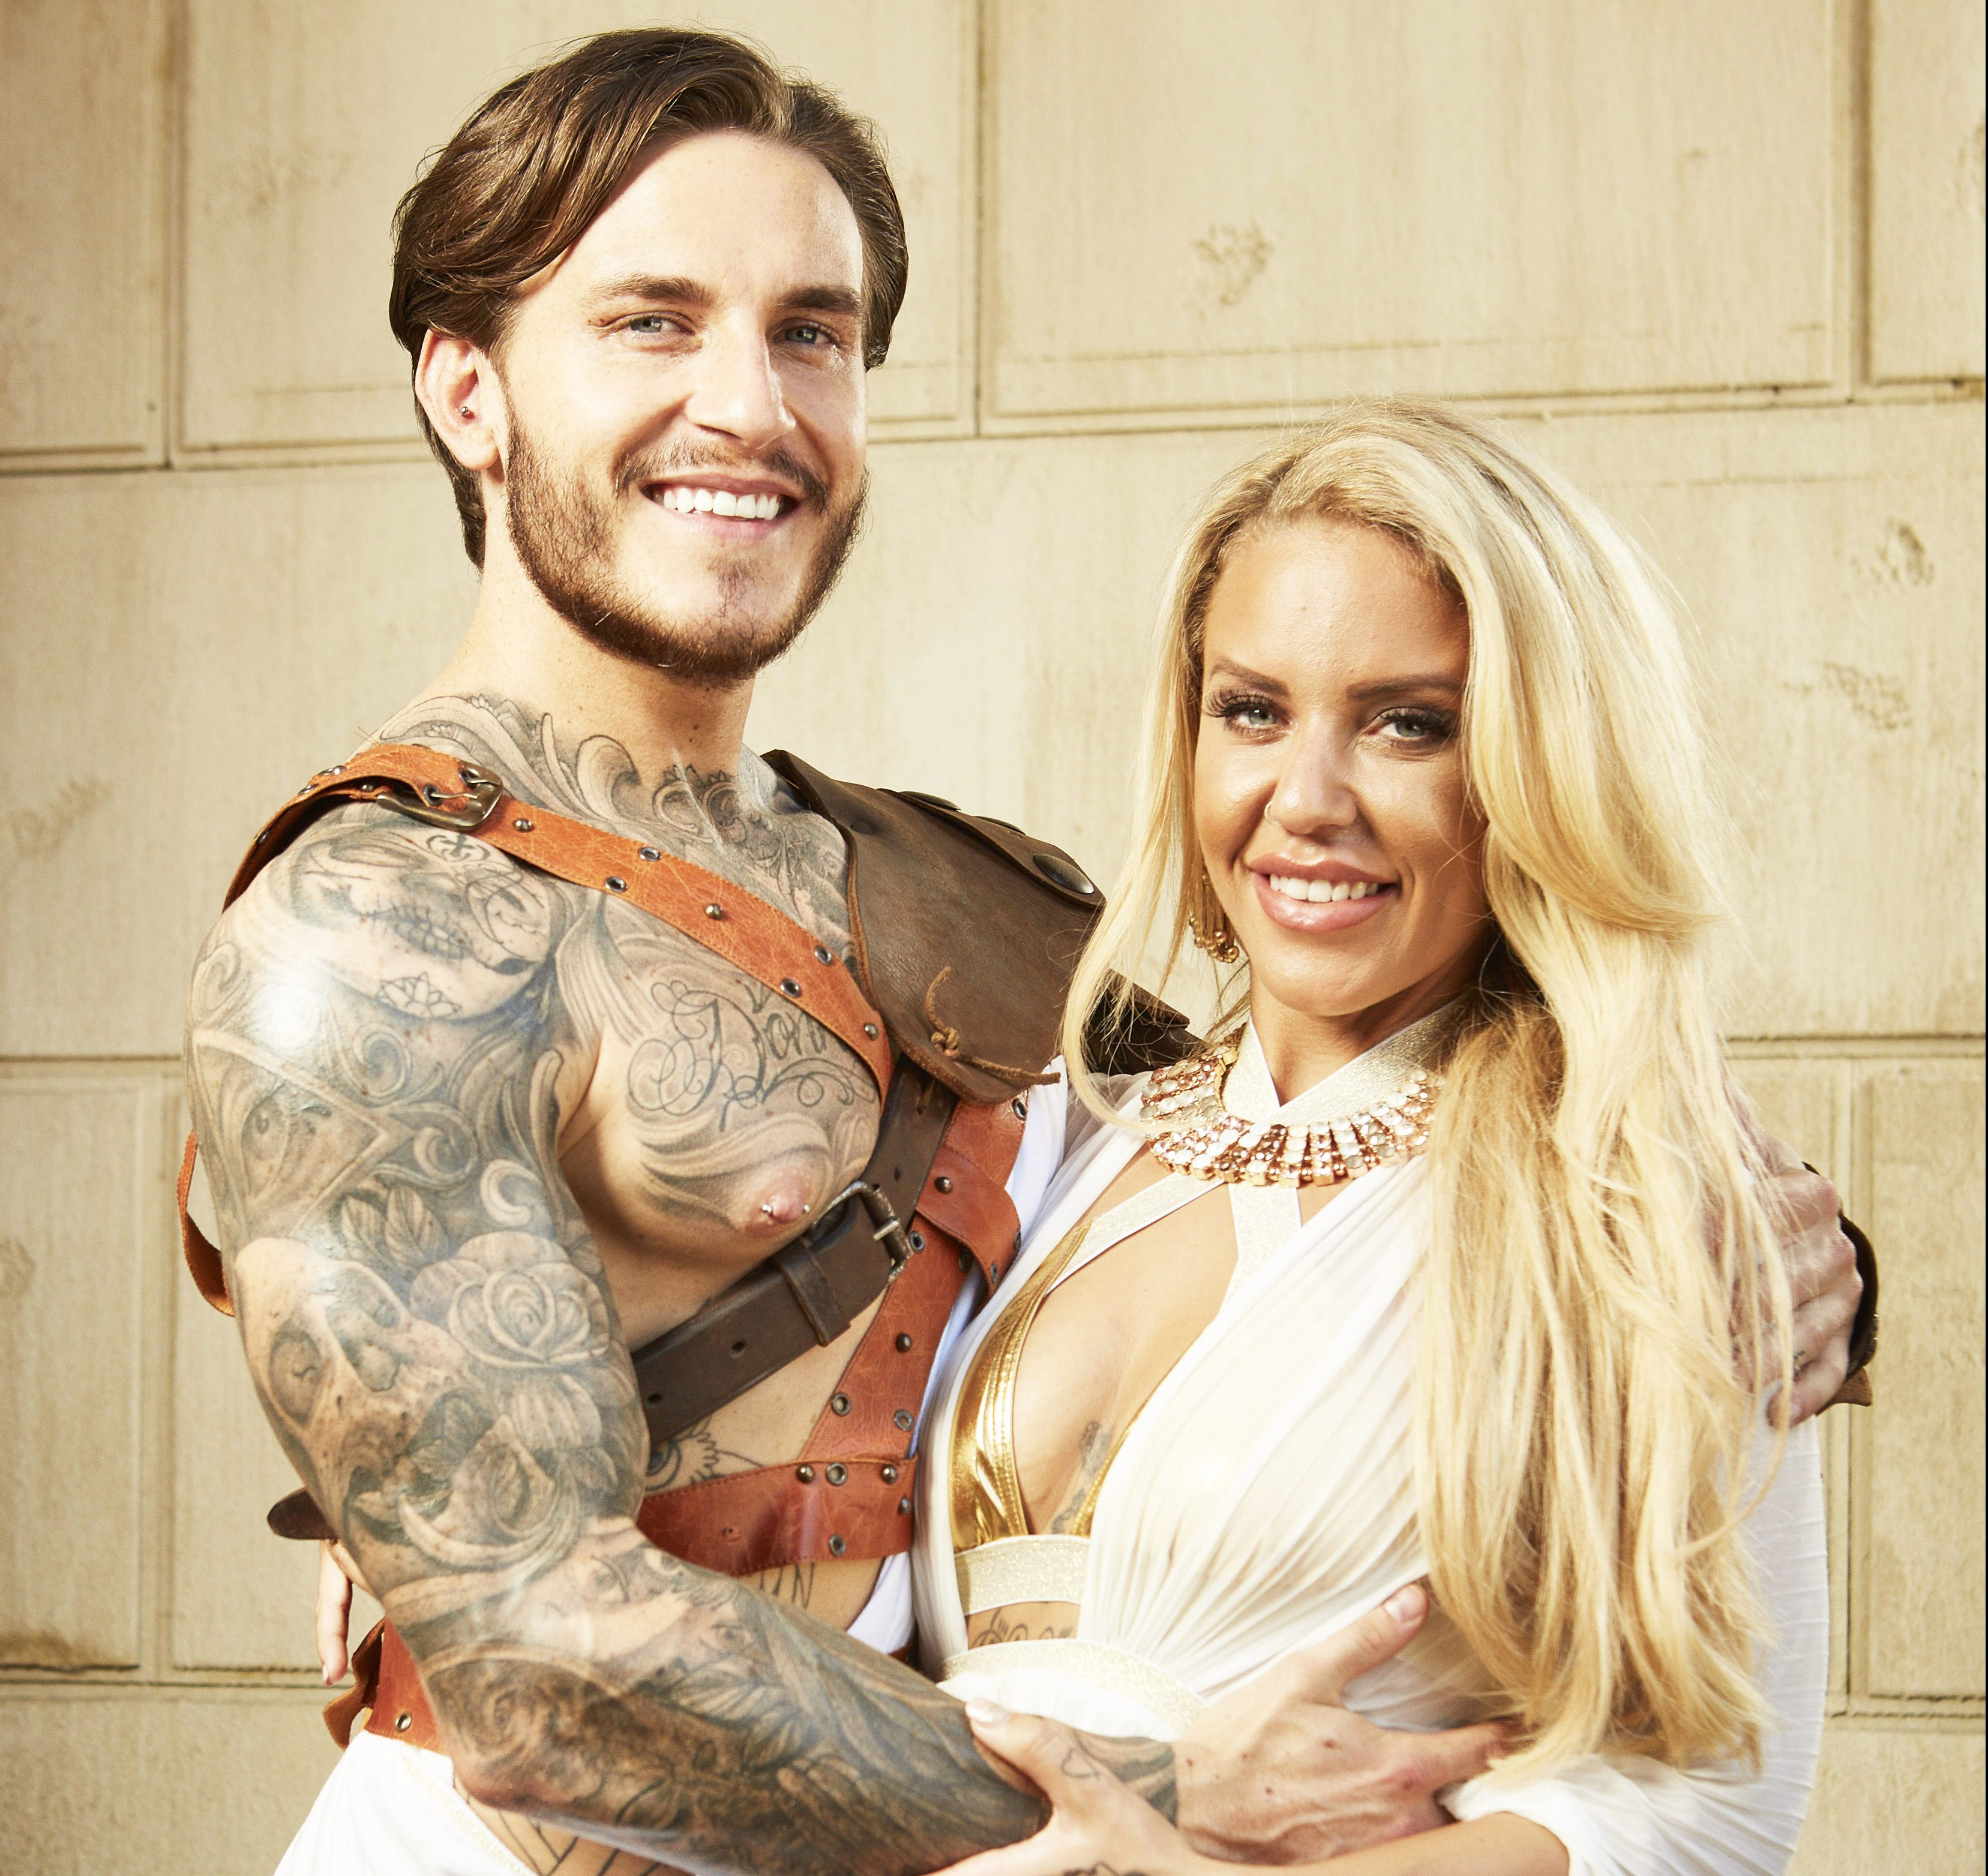 Meet the Bromans couples: Make Or Break stars Sophii and Richard are back